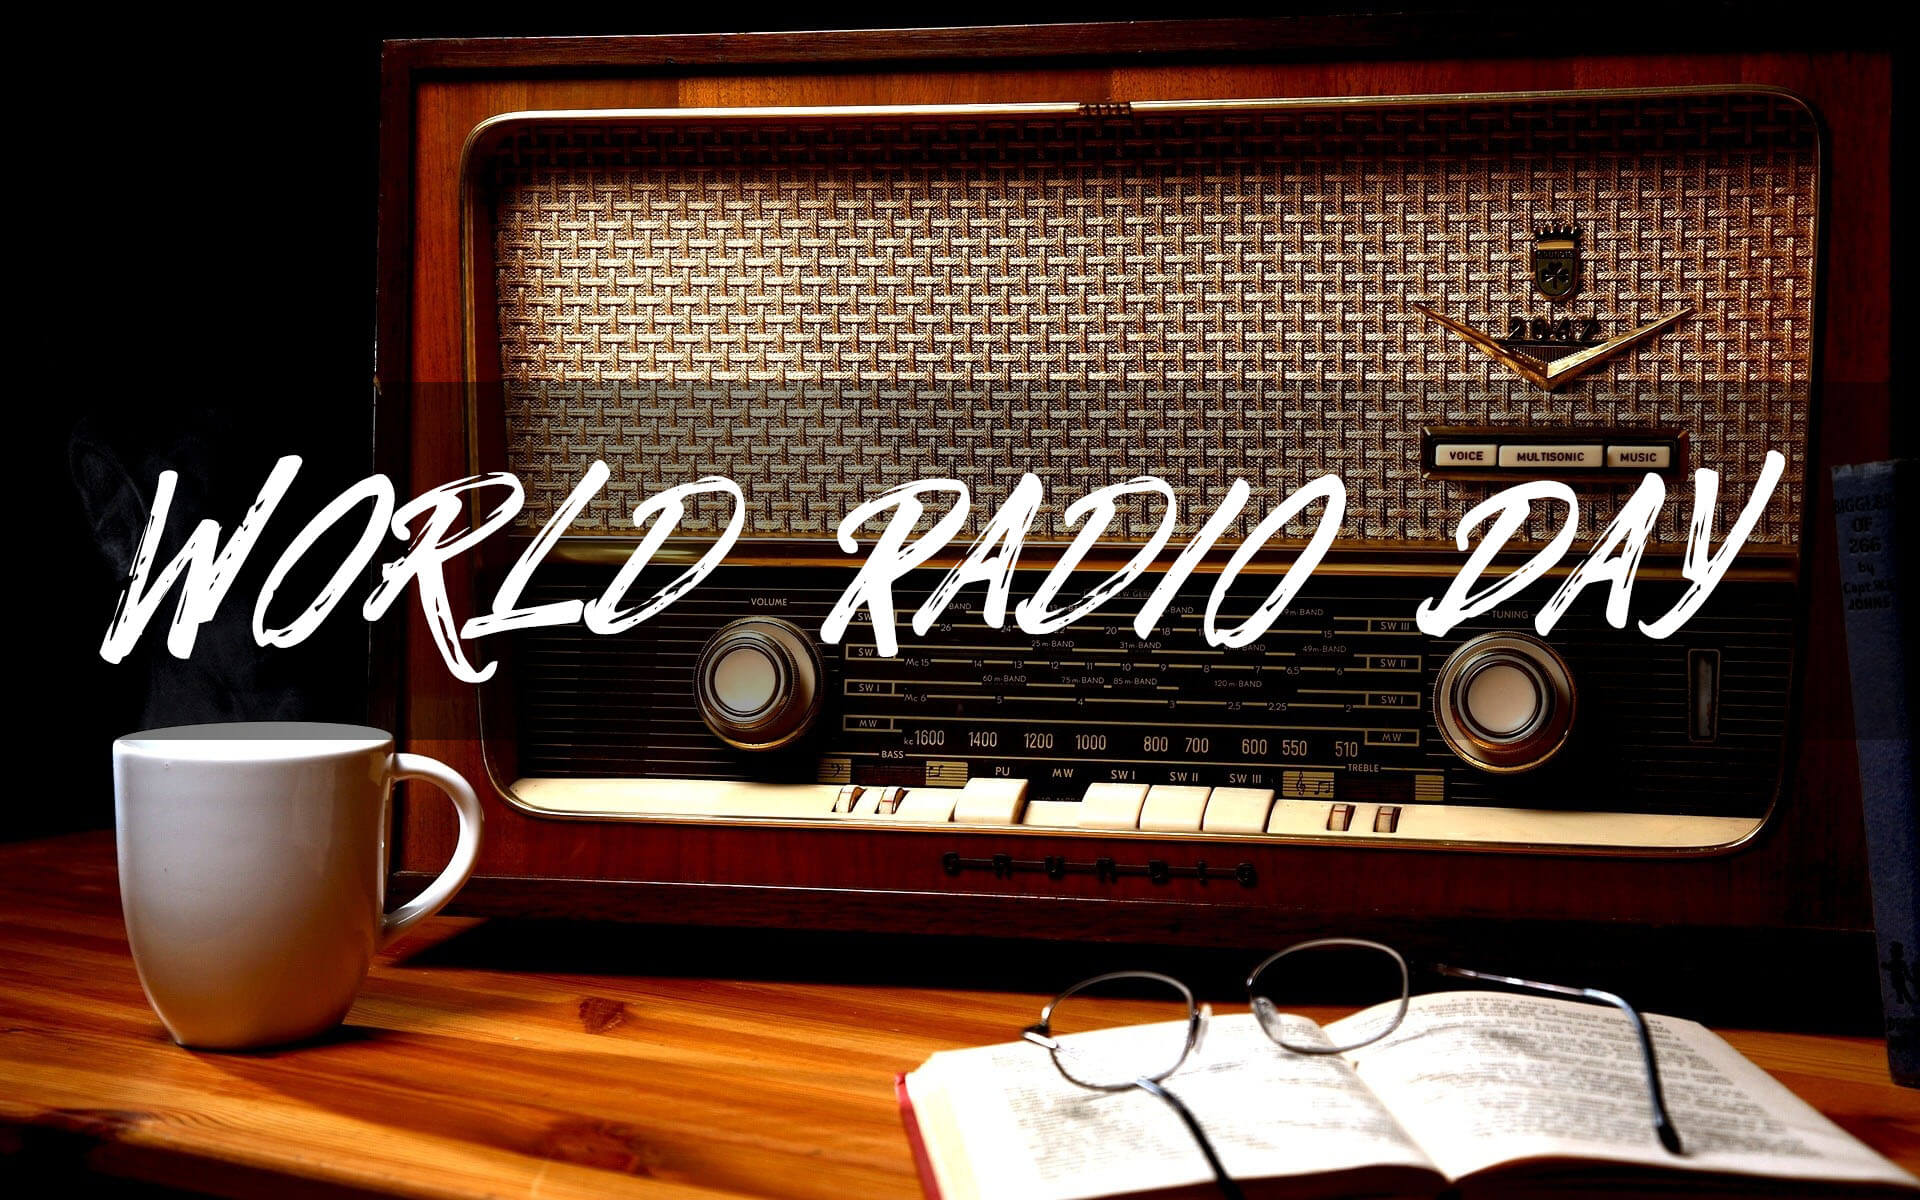 world radio day new desktop background hd wallpaper